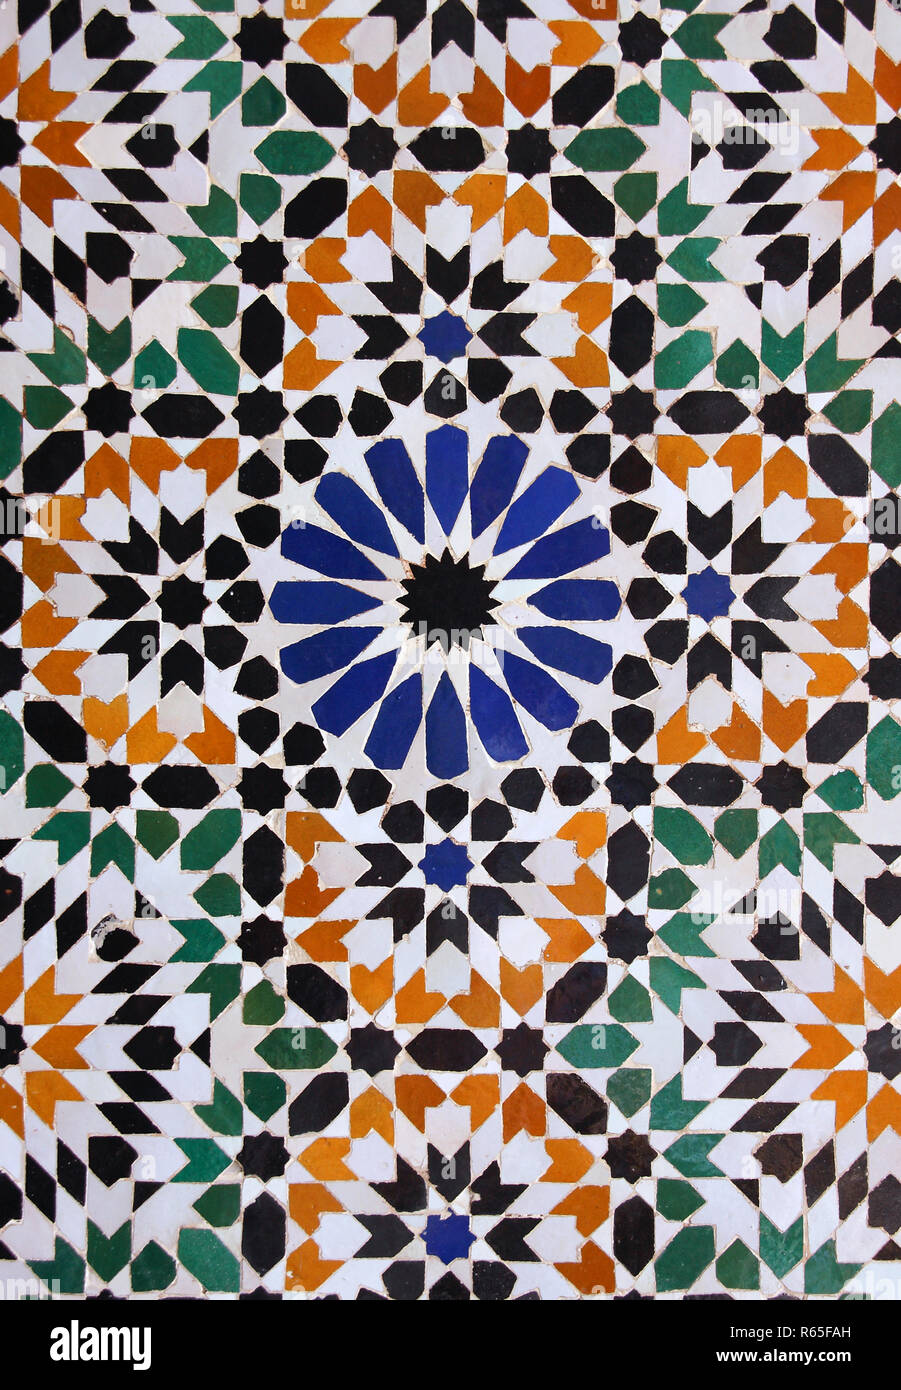 https www alamy com morocco marrakesh typical old colorful arabesque mauresque glazed ceramic wall tiles image227544537 html